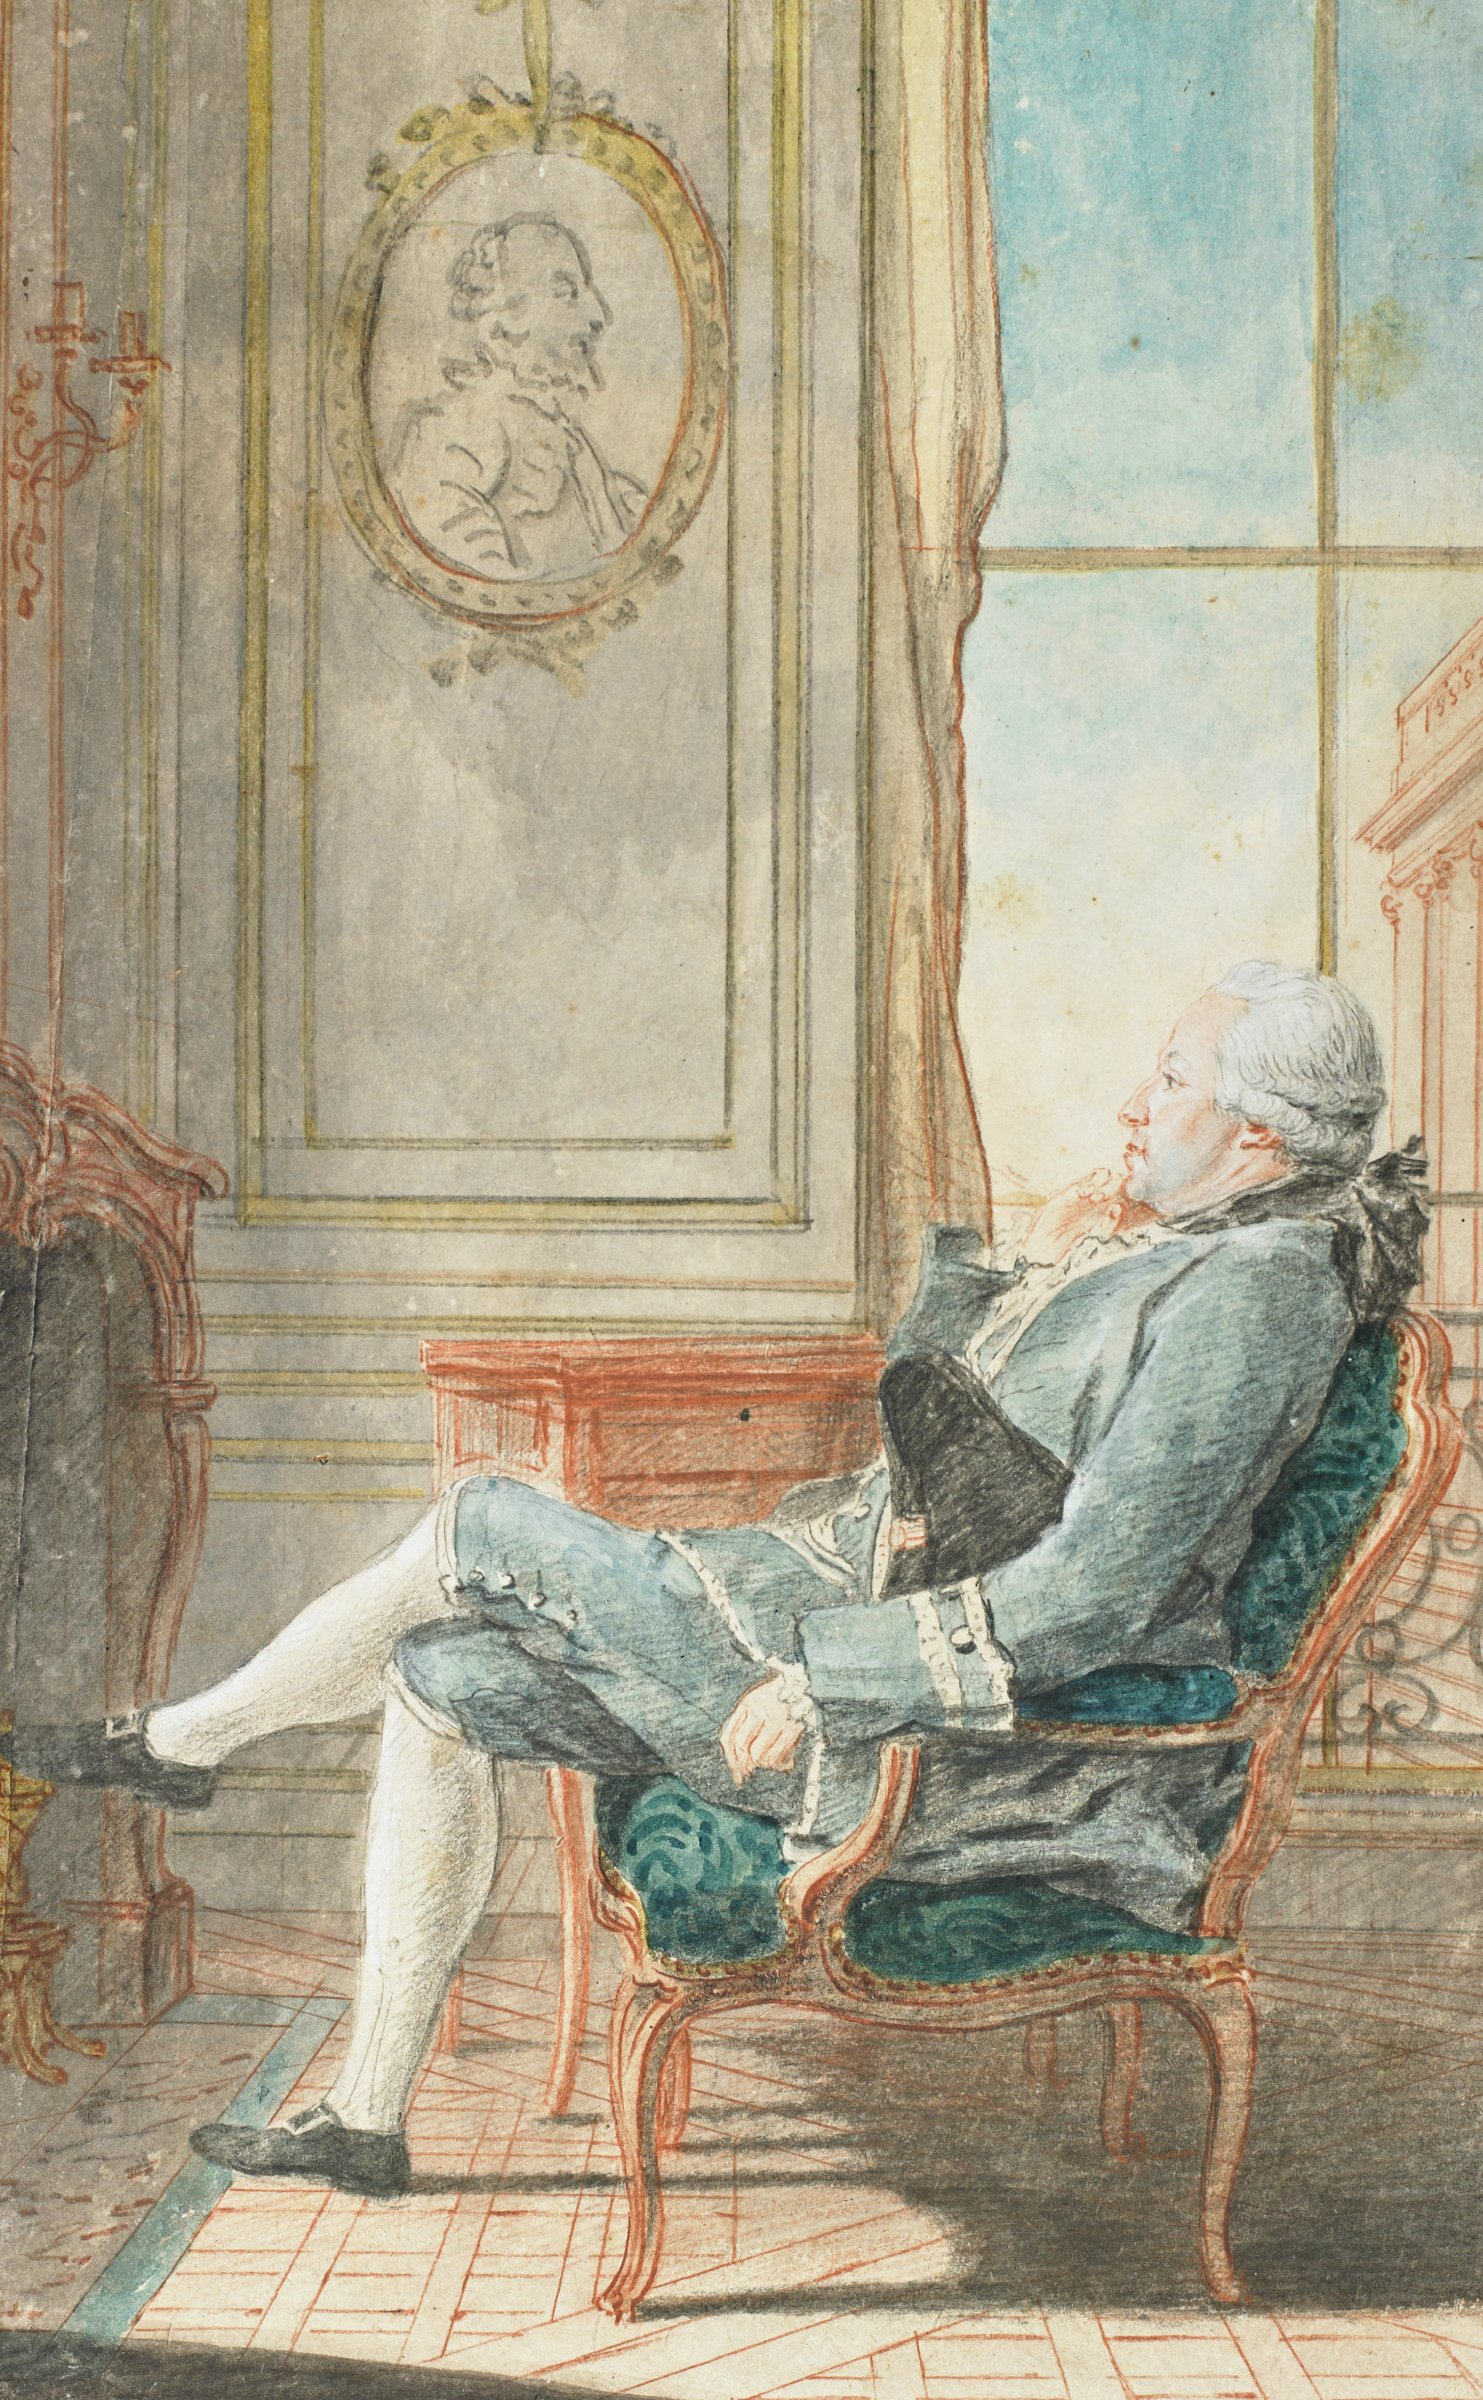 Seated man in a light blue jacket and pants, facing left, in an elegant interior setting. A black tricorn hat is tucked under his left arm. He sits in an armchair with blue upholstery, in front of a window. Before him is a mantel, with a sconce and candles above. On the wall above him is an oval portrait of a man.